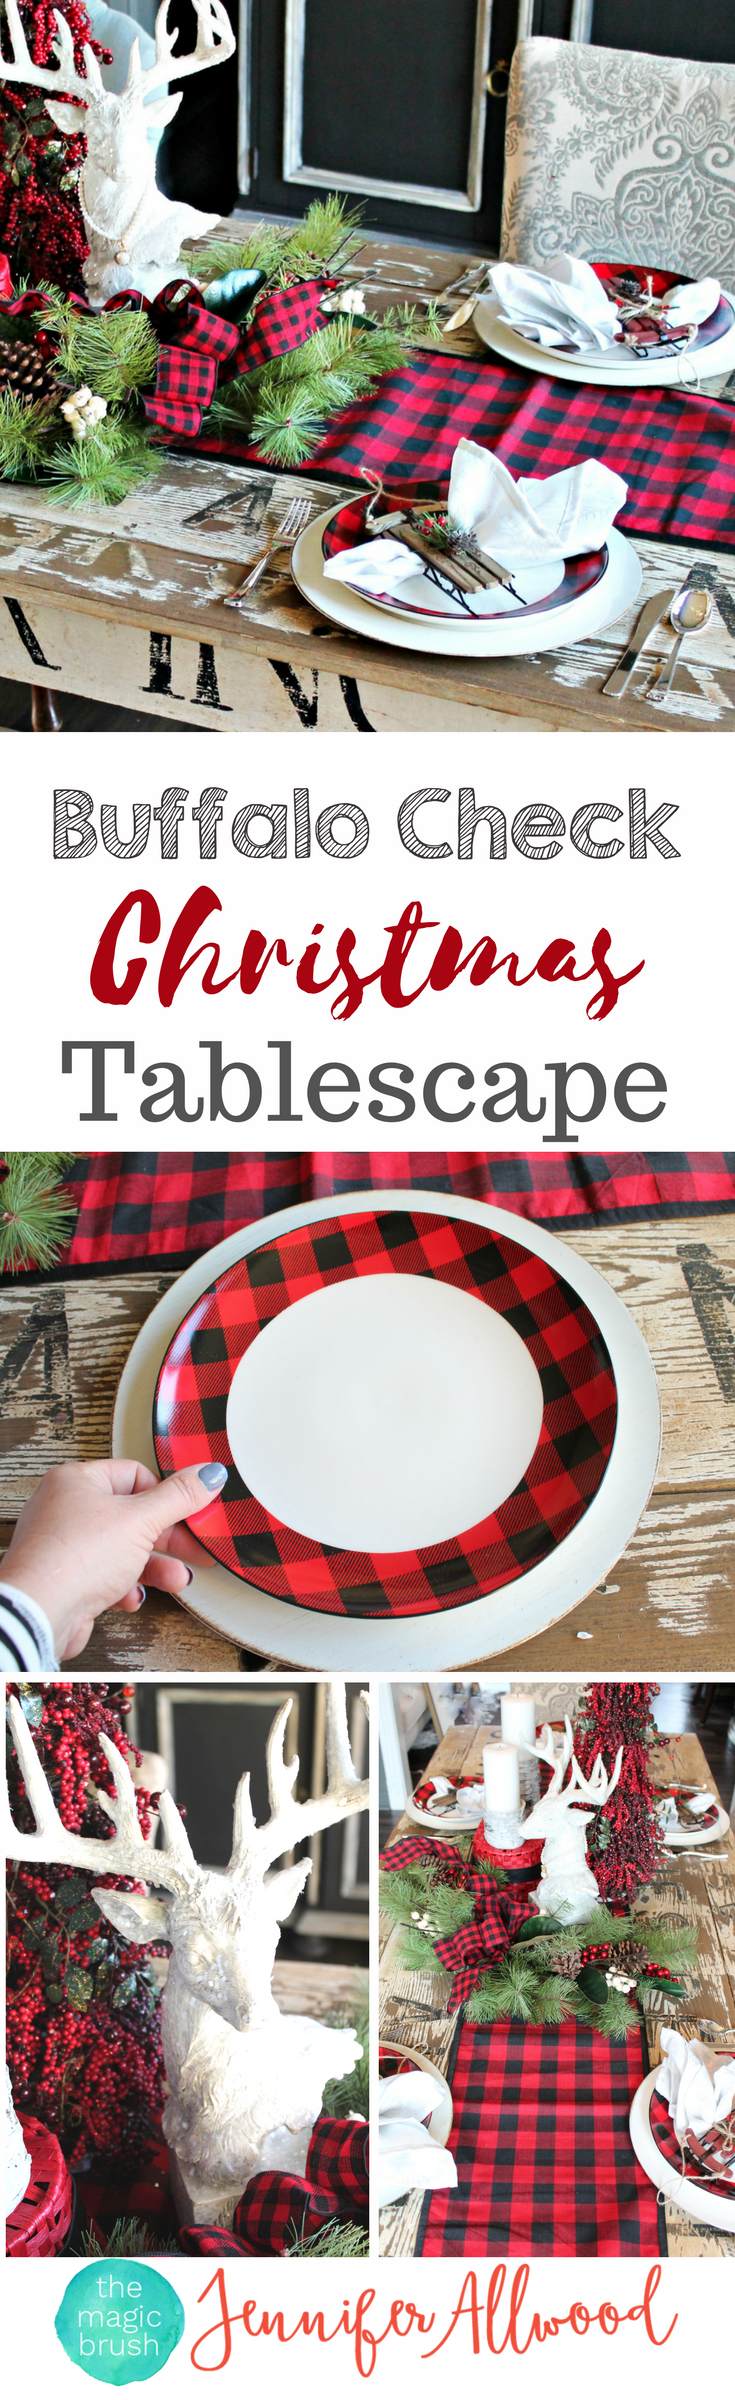 Info's : Buffalo Check Christmas Decorating by theMagicBrushinc.com. This beautiful plaid tablescape cost less than 0 from Hobby Lobby. Love these Tartan Christmas Decorating Ideas!